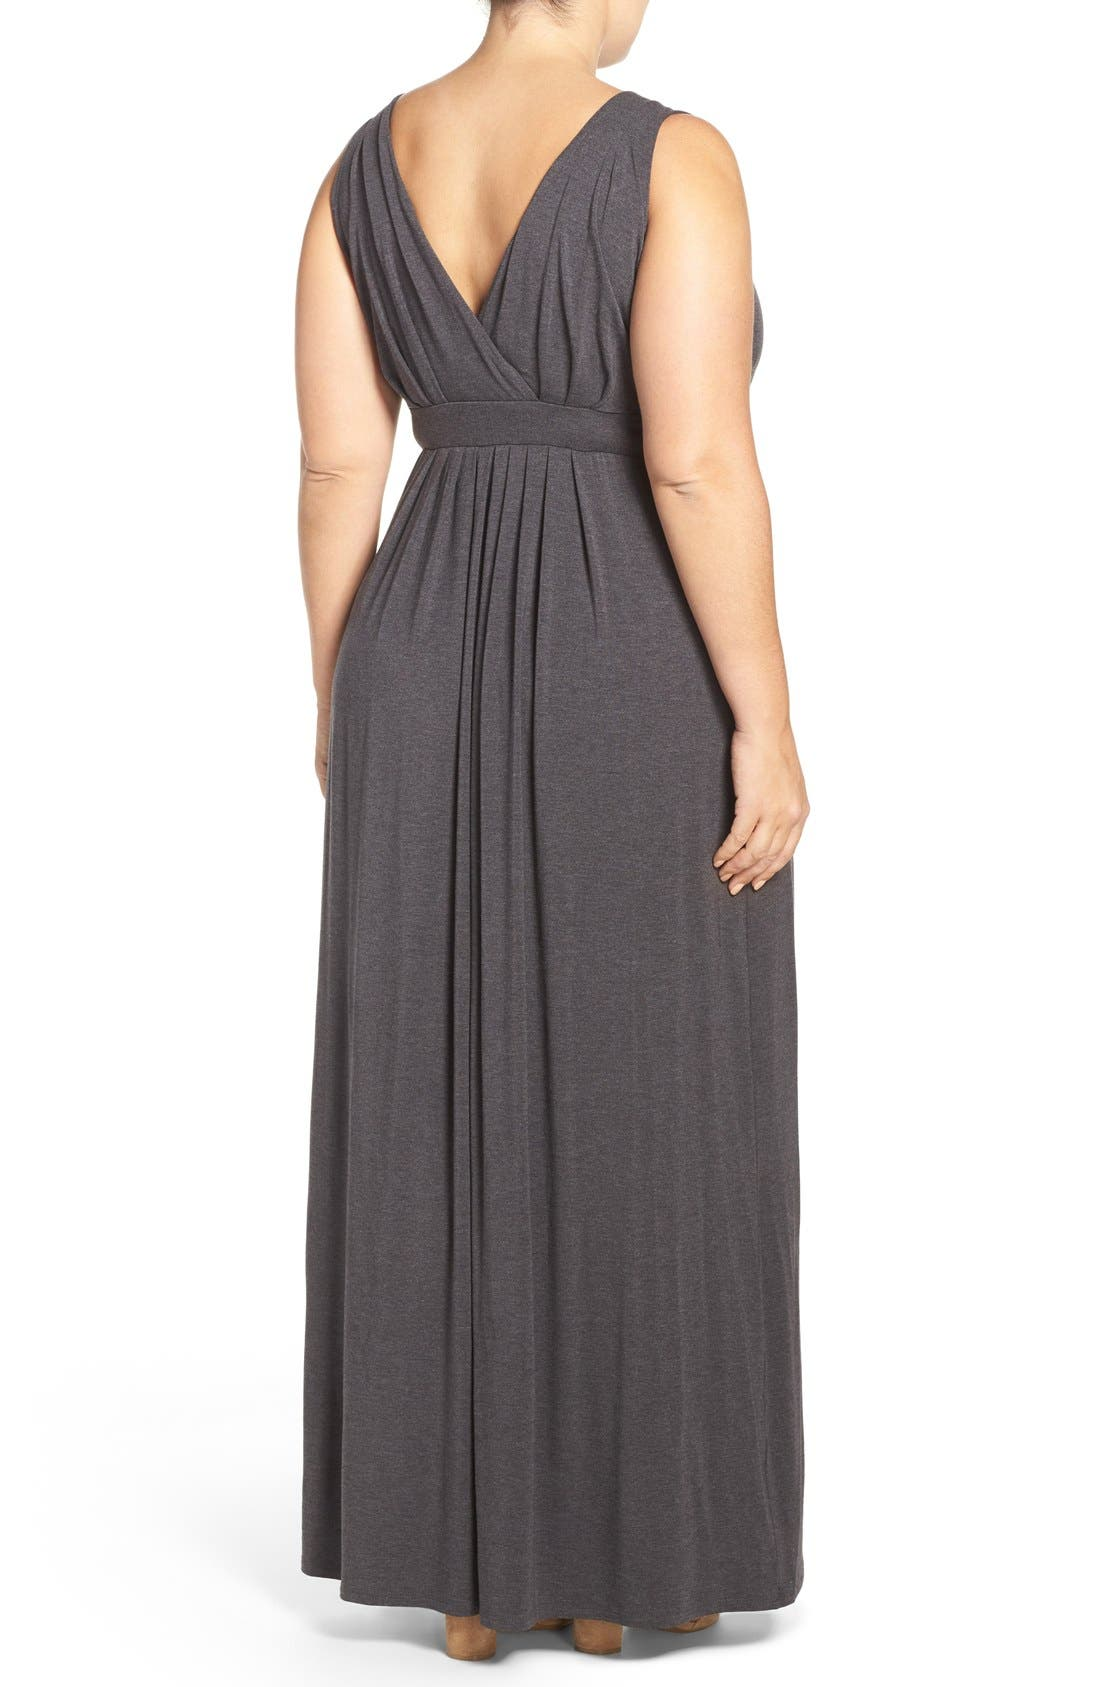 Chloe Empire Waist Maxi Dress,                             Alternate thumbnail 27, color,